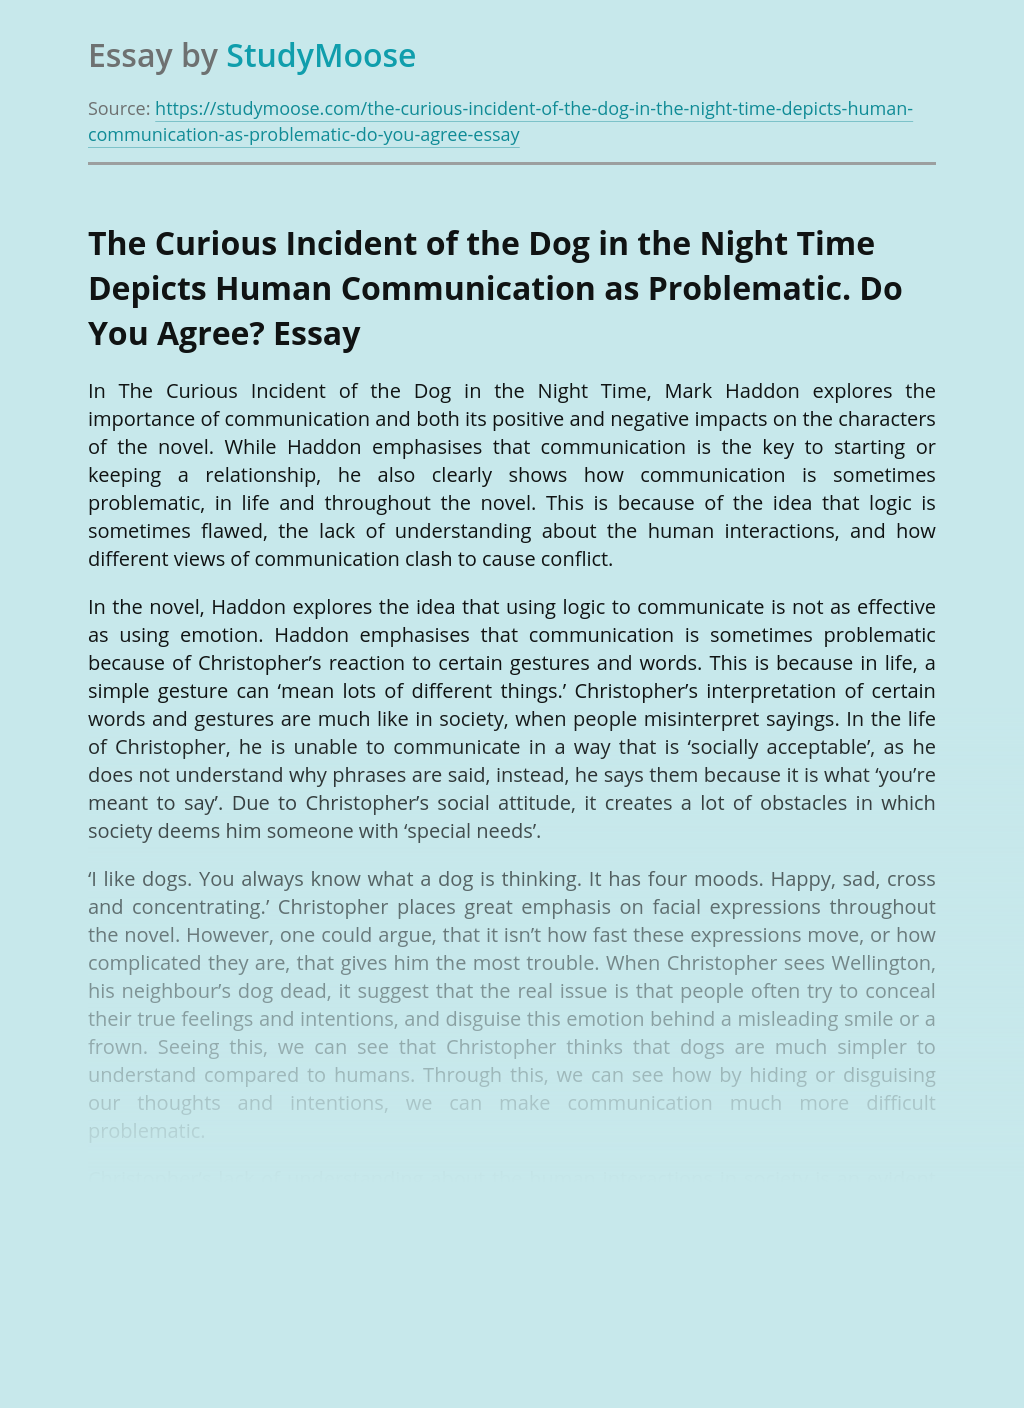 The Curious Incident of the Dog in the Night Time Depicts Human Communication as Problematic. Do You Agree?